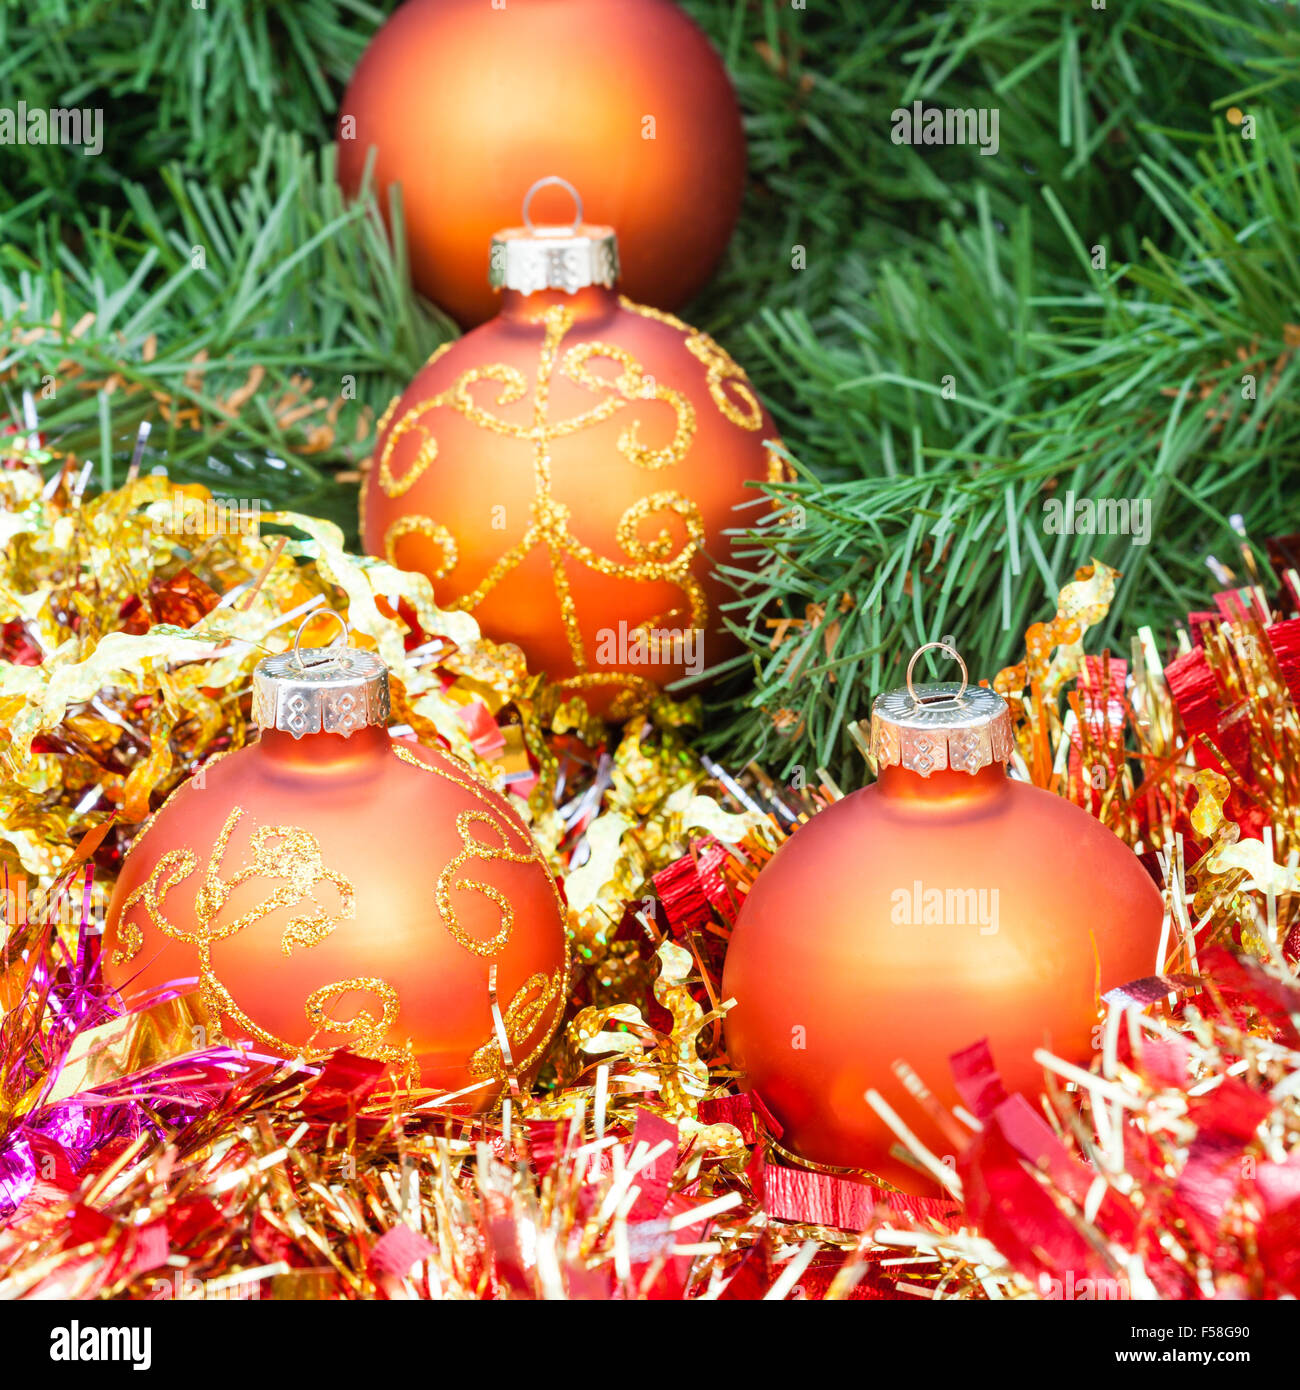 Christmas Still Life Several Orange And Yellow Christmas Baubles Stock Photo Alamy